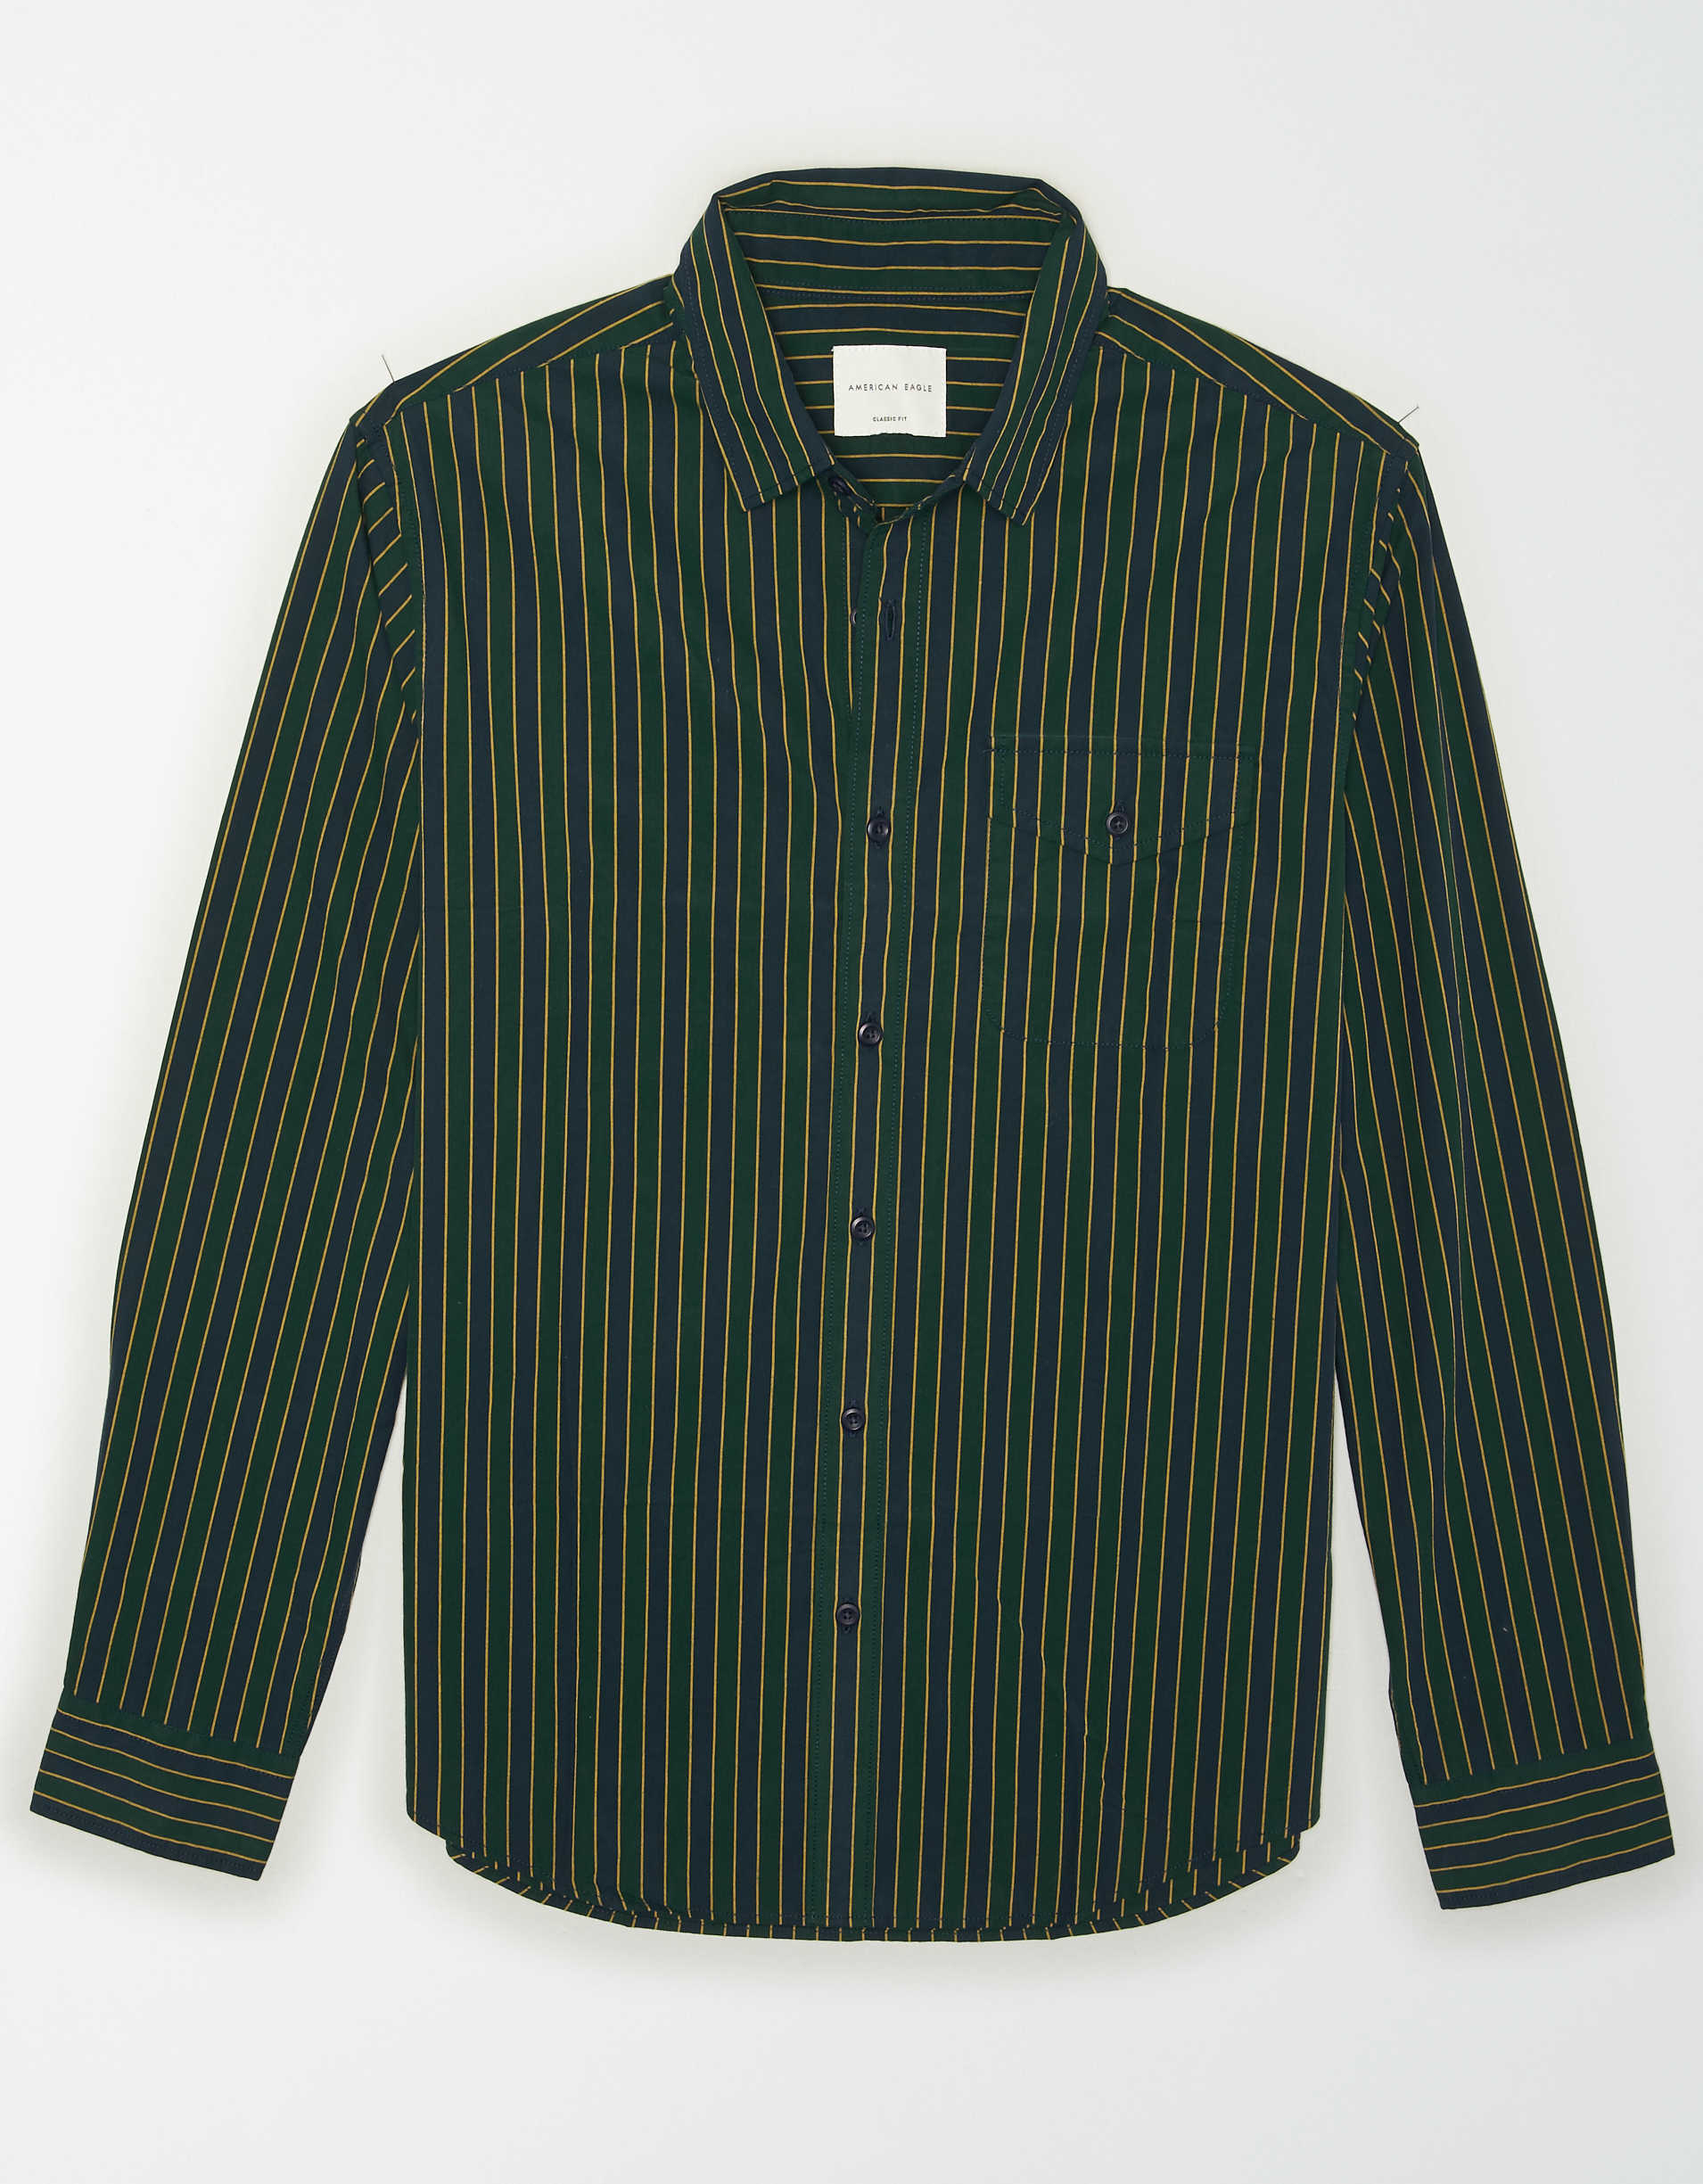 AE Striped Poplin Button Up Shirt